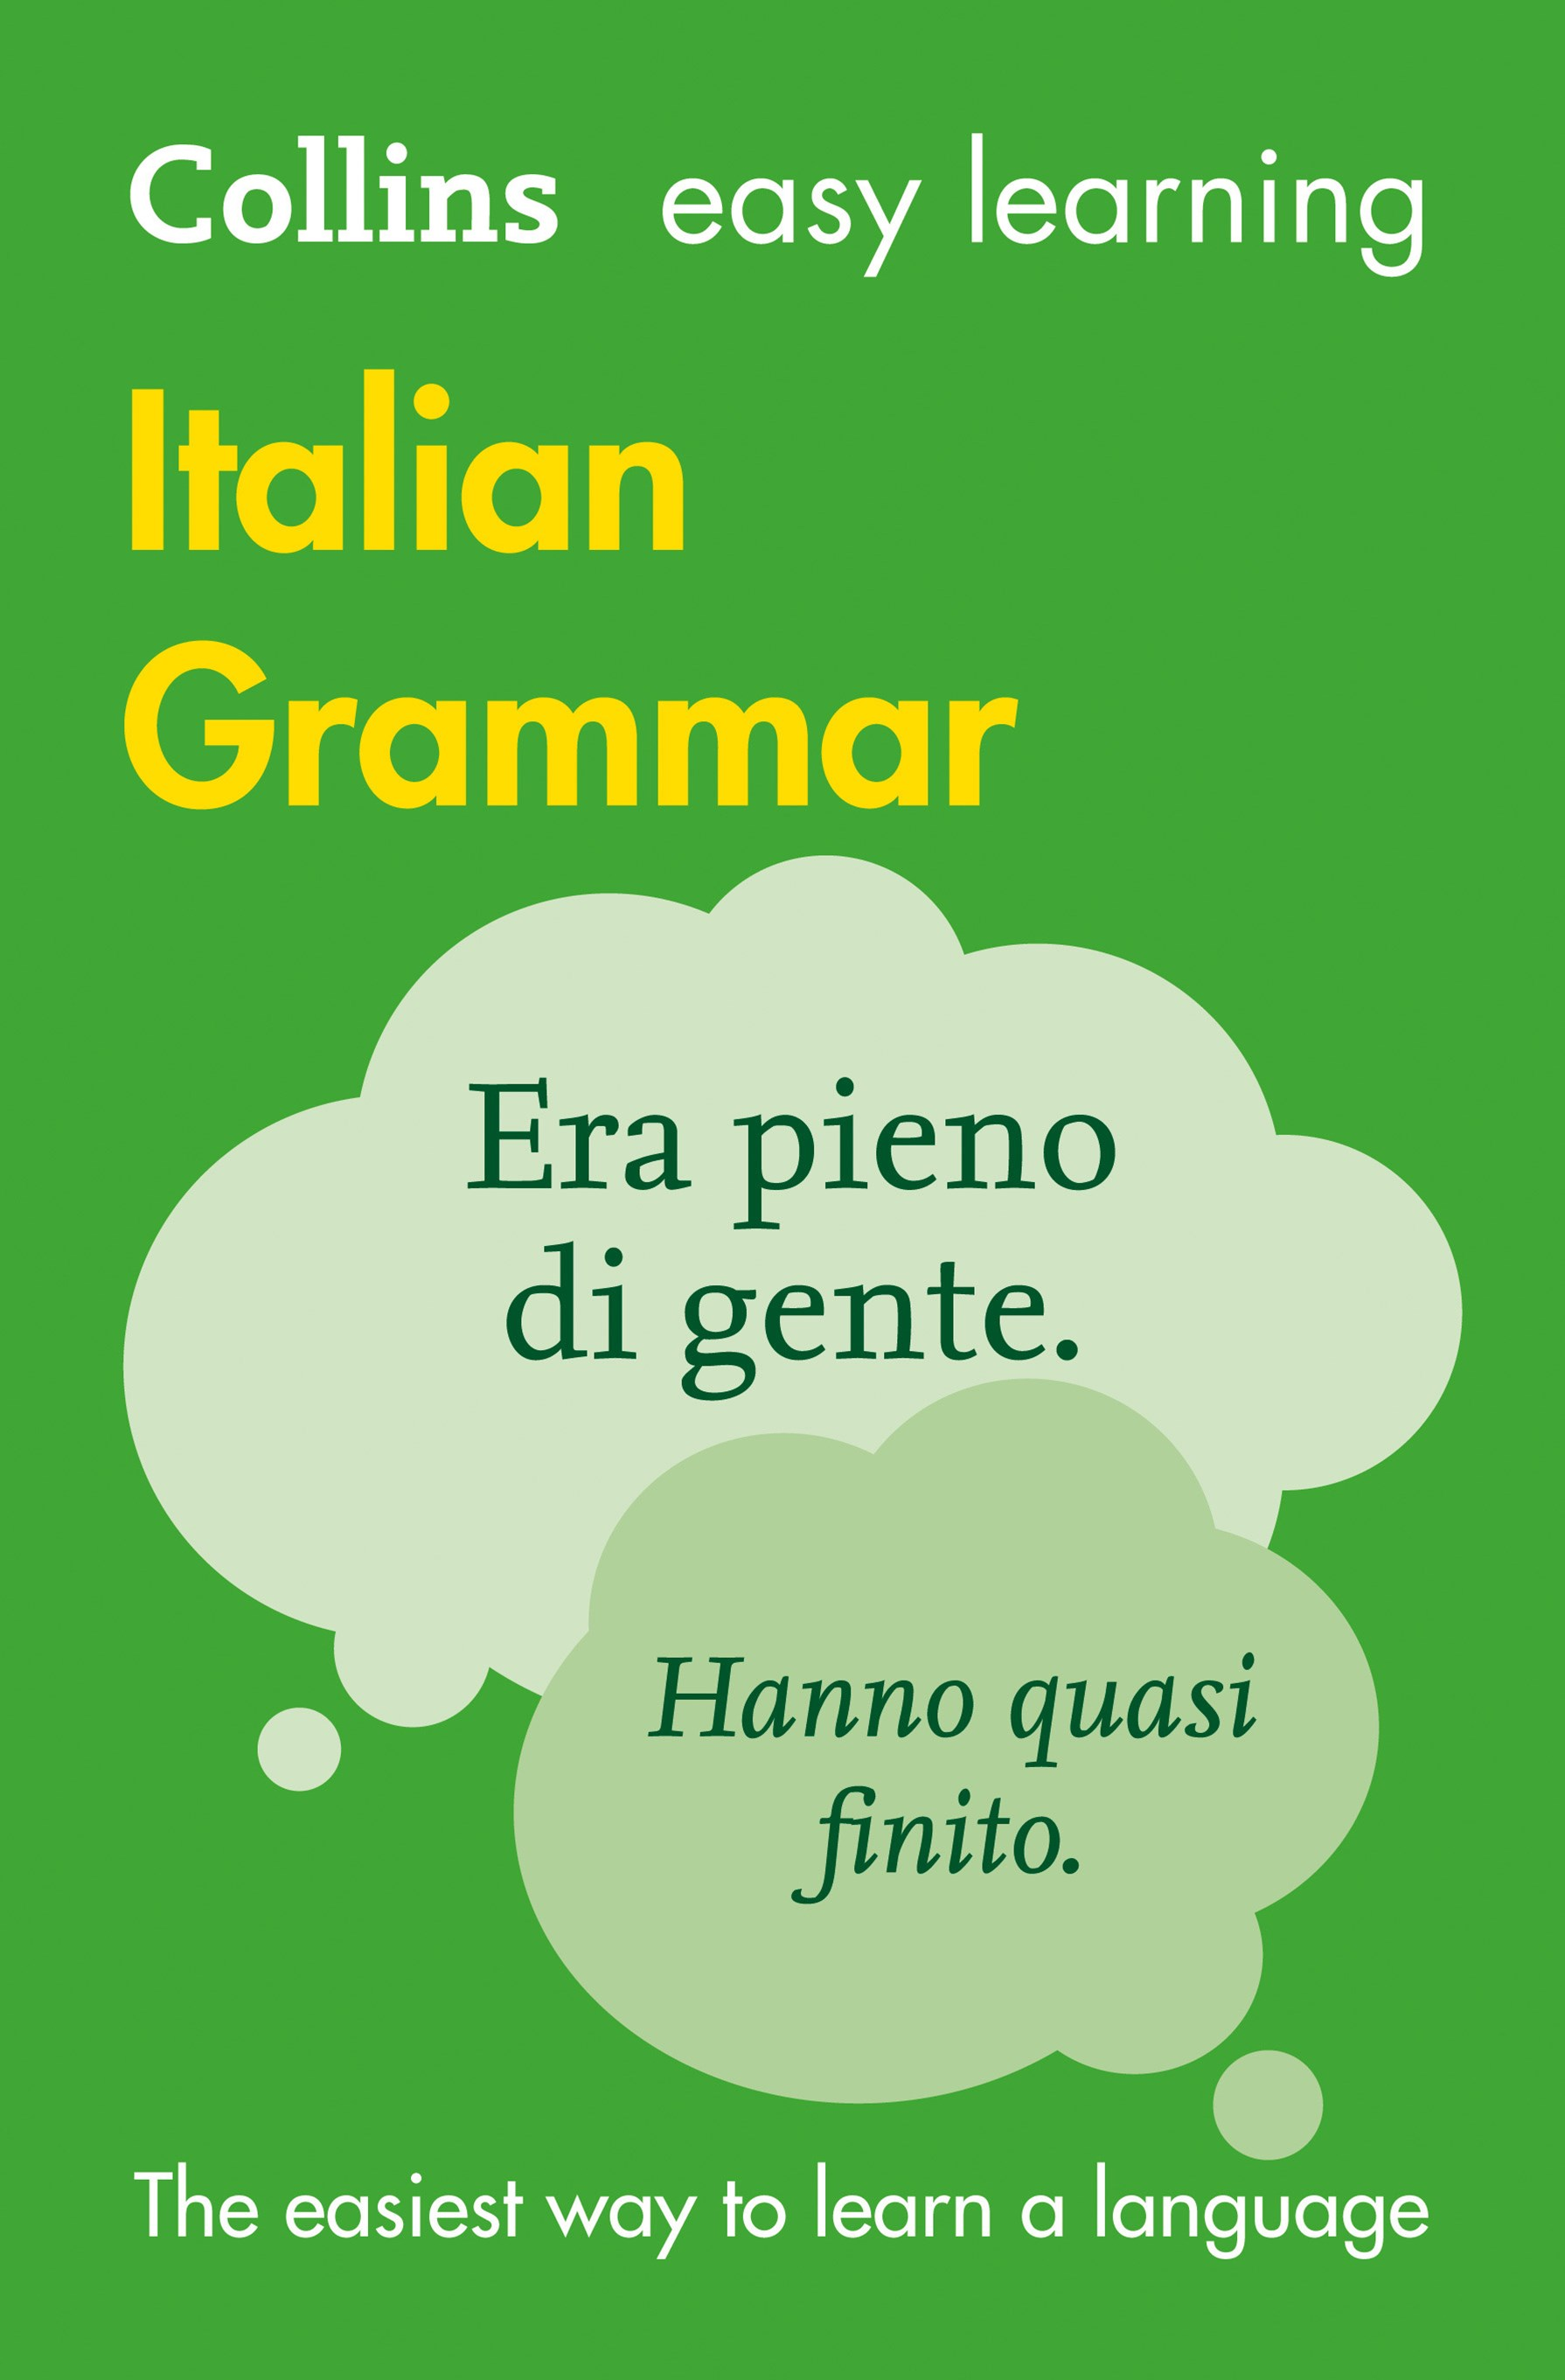 Collins Easy Learning Italian Grammar [3rd Edition]